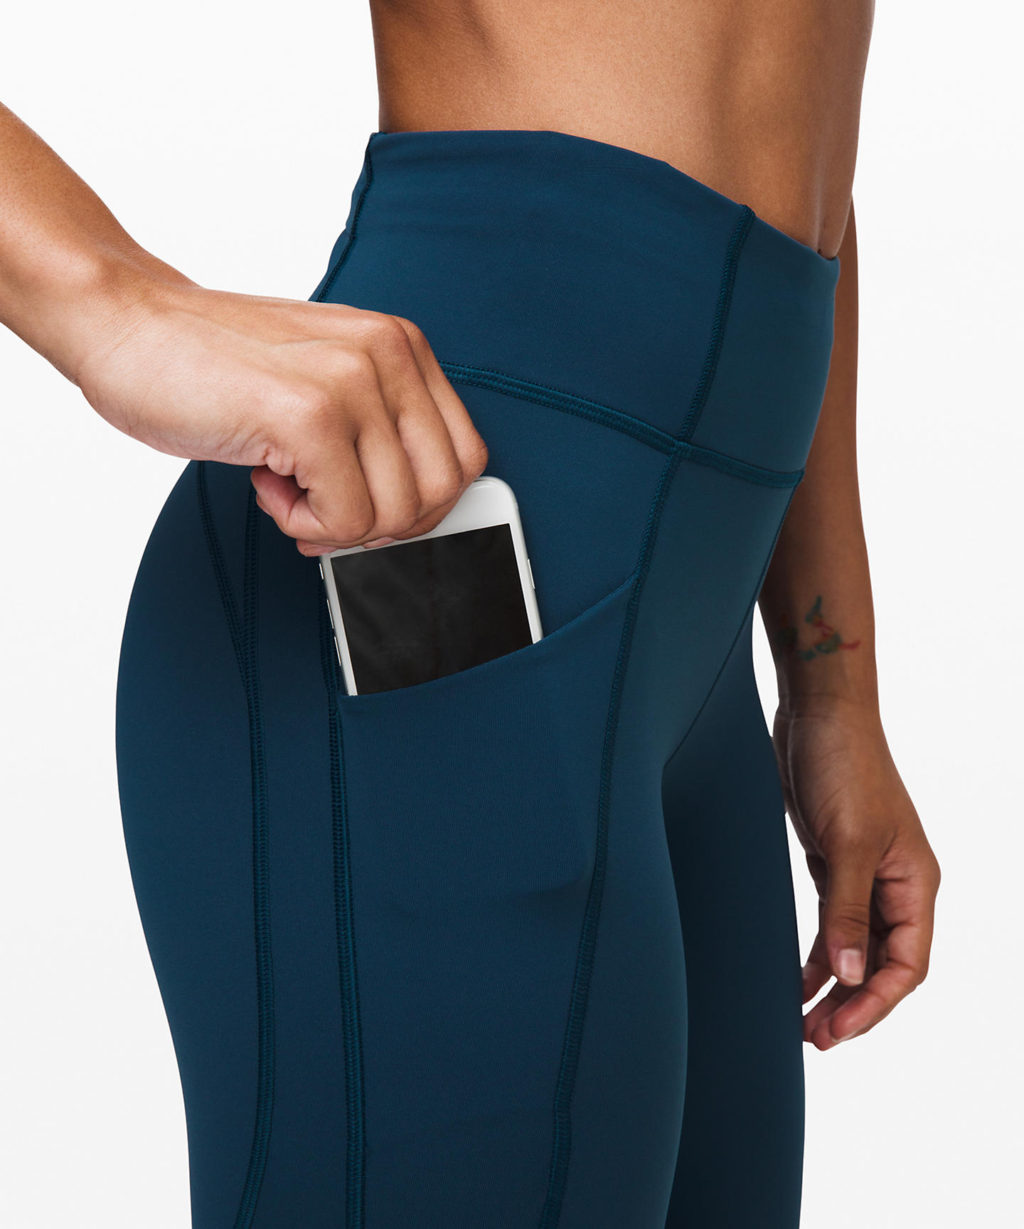 Lululemon time To Sweat leggings Review